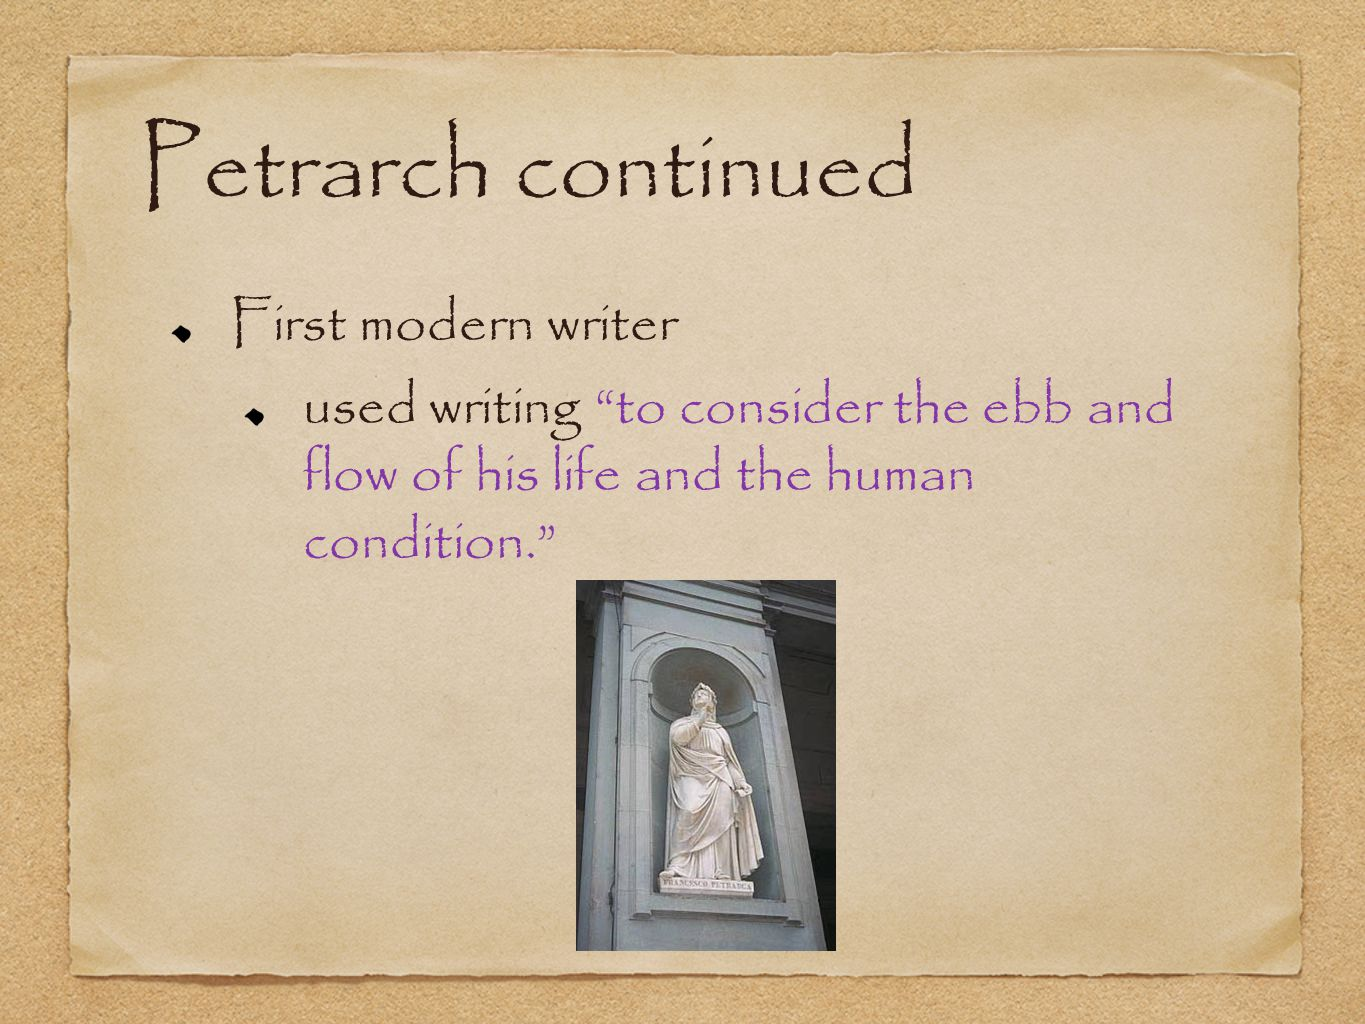 Petrarch continued First modern writer used writing to consider the ebb and flow of his life and the human condition.